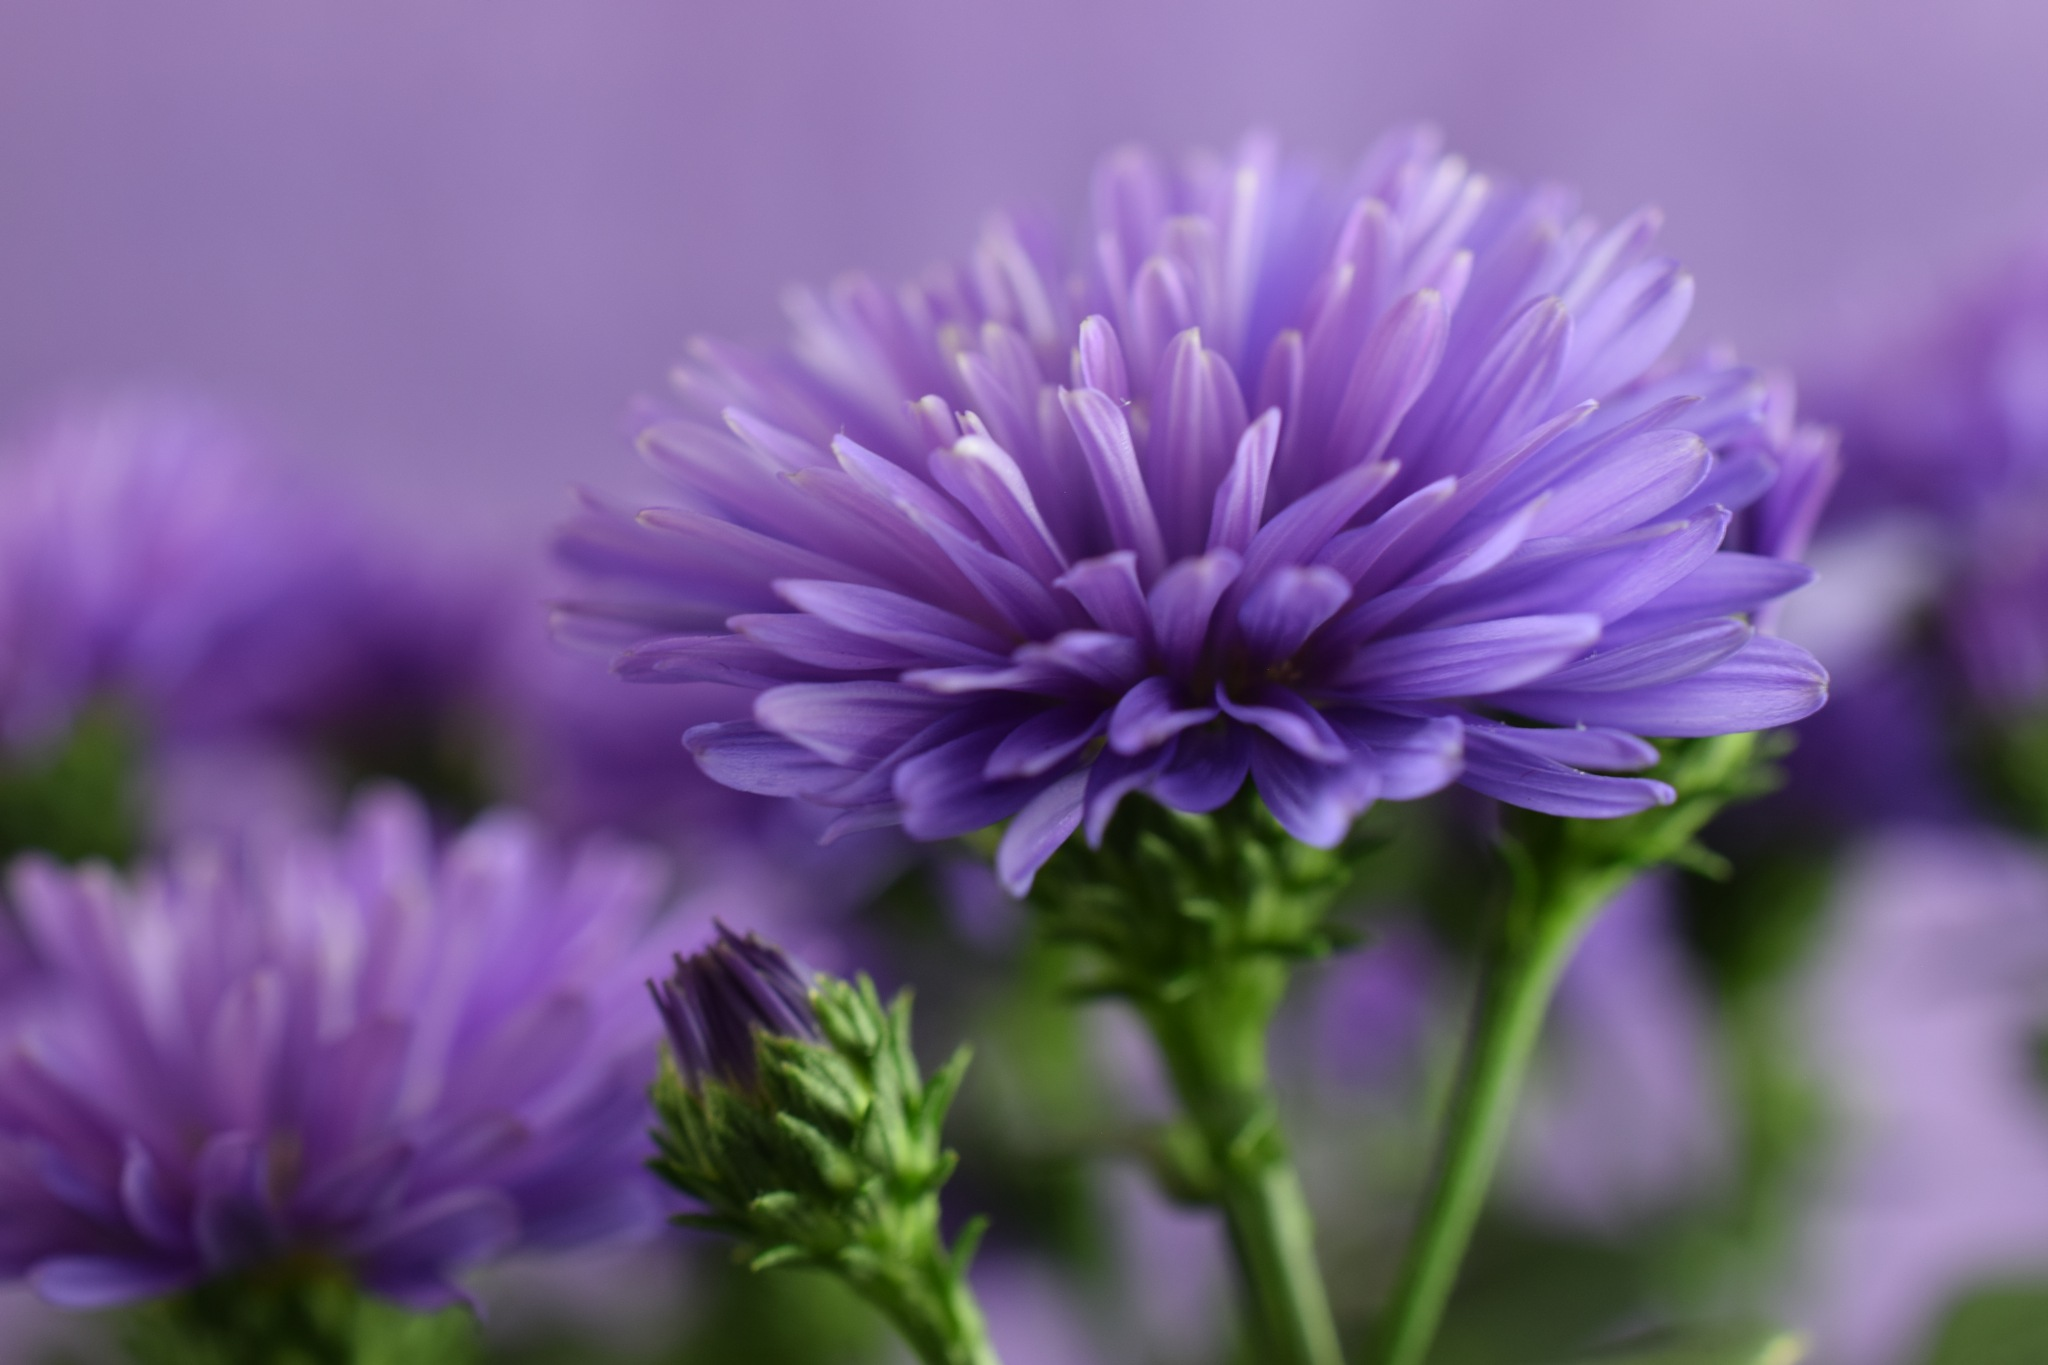 Aster flower power by Theresia Buskas